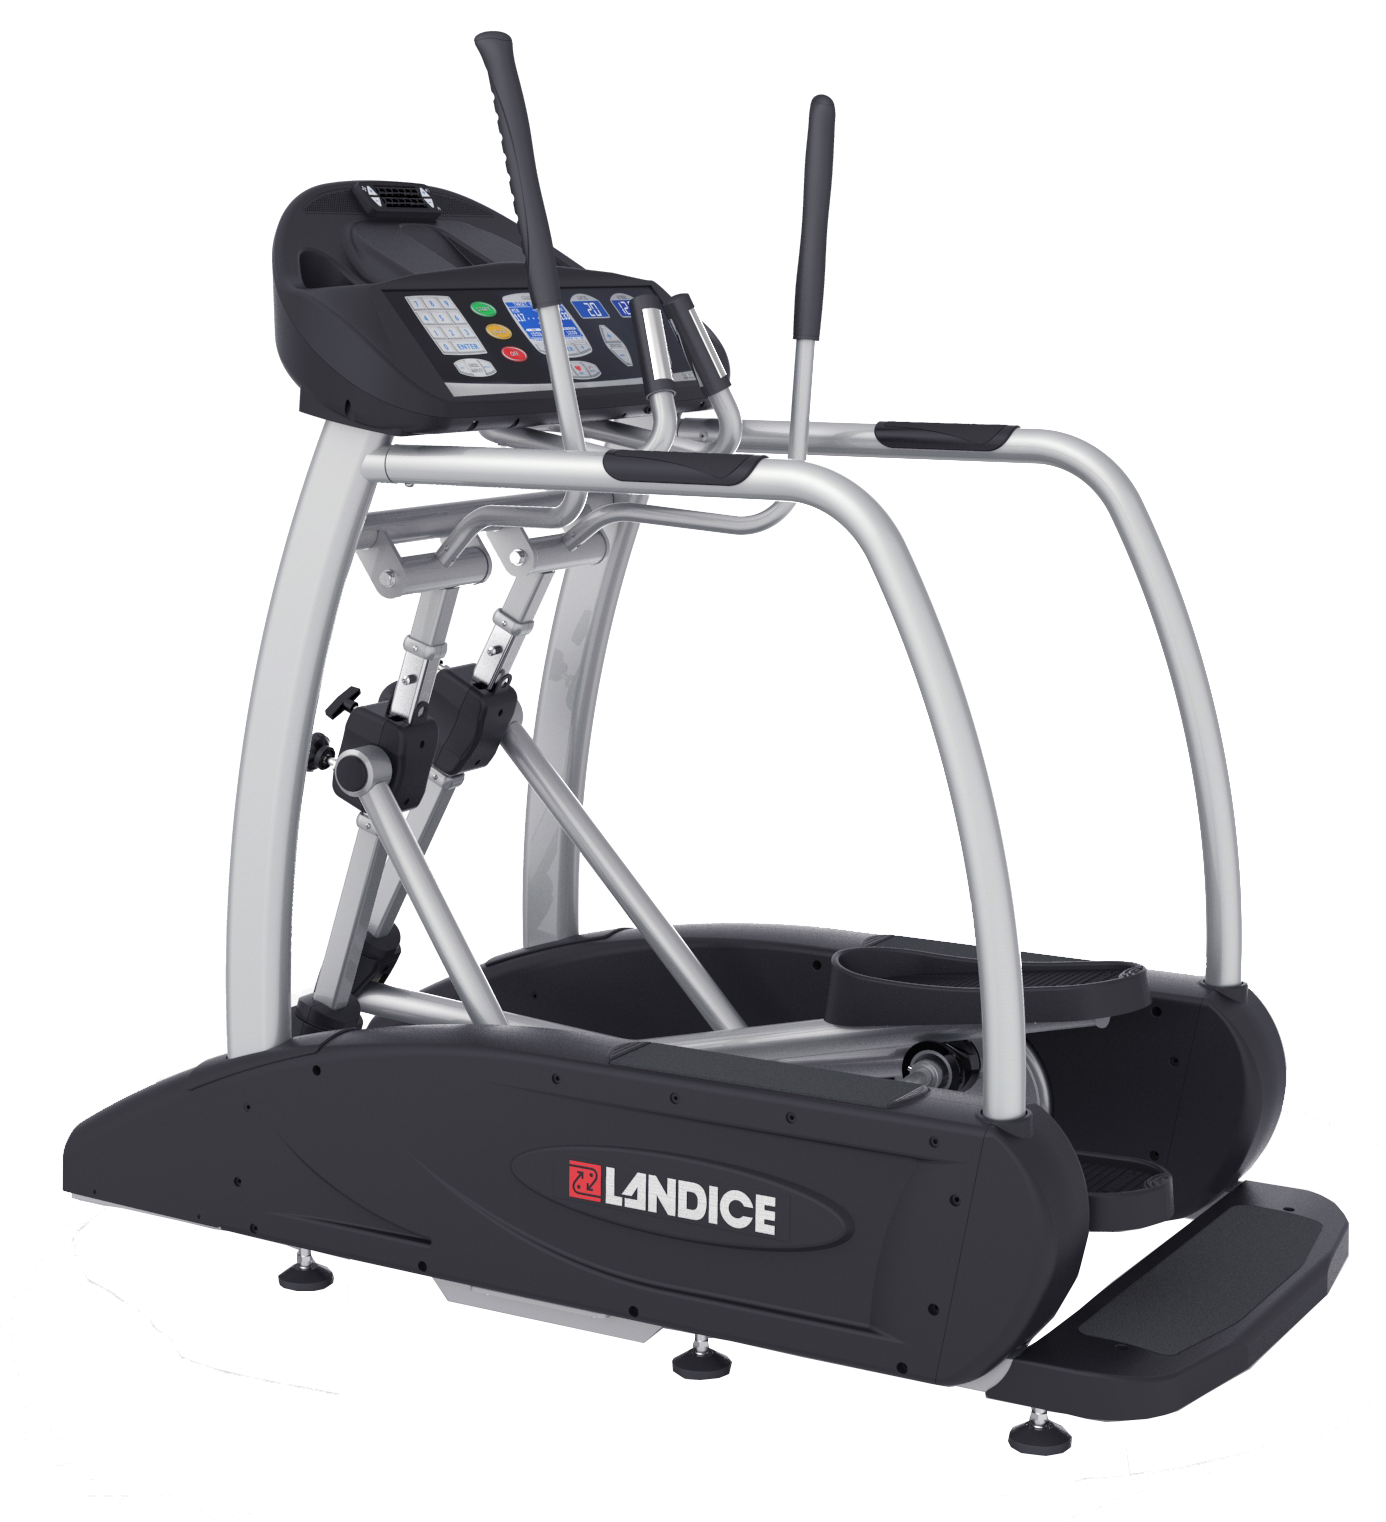 Landice Elliptical Trainers